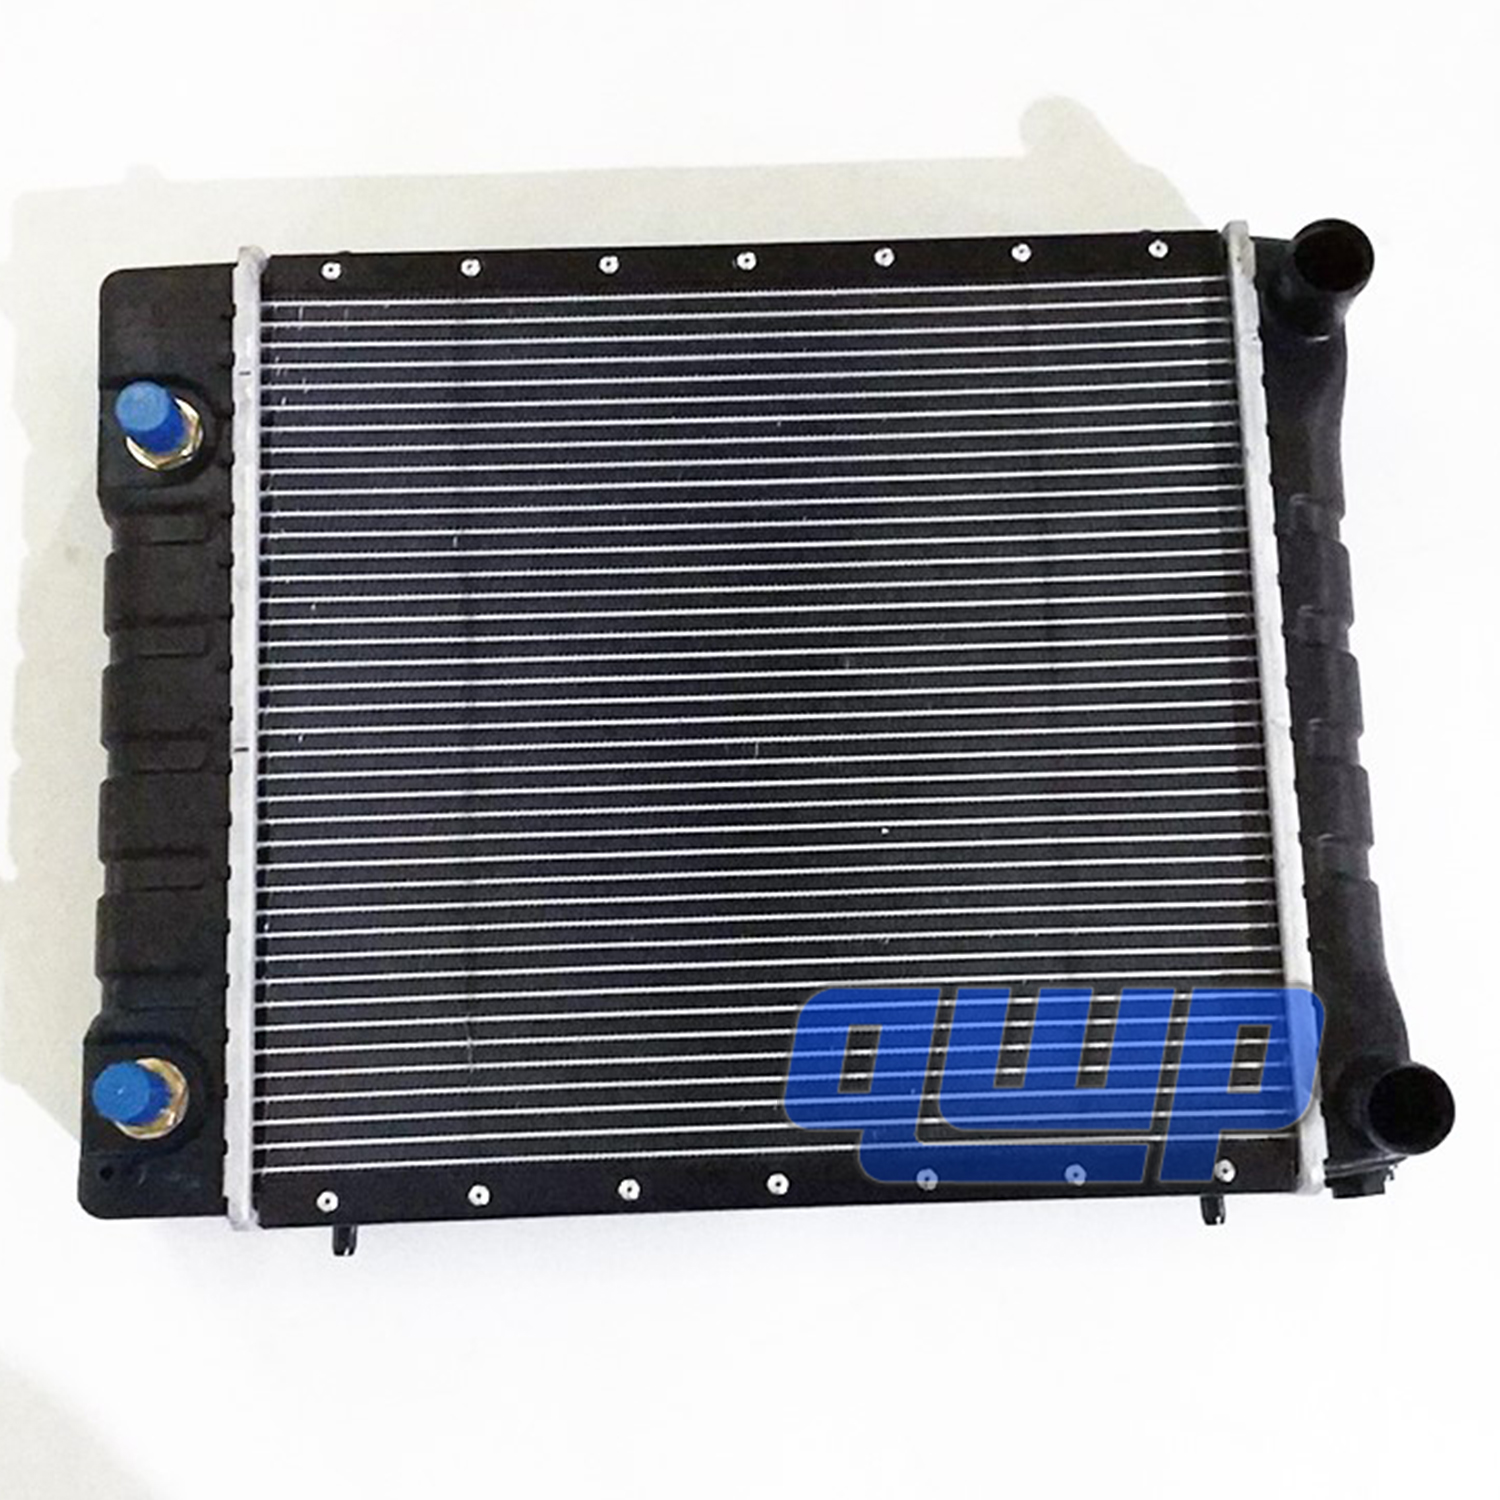 Radiator For Land Rover Defender Discovery 2.5 TDi 90 110 Auto / Manual  BTP2275